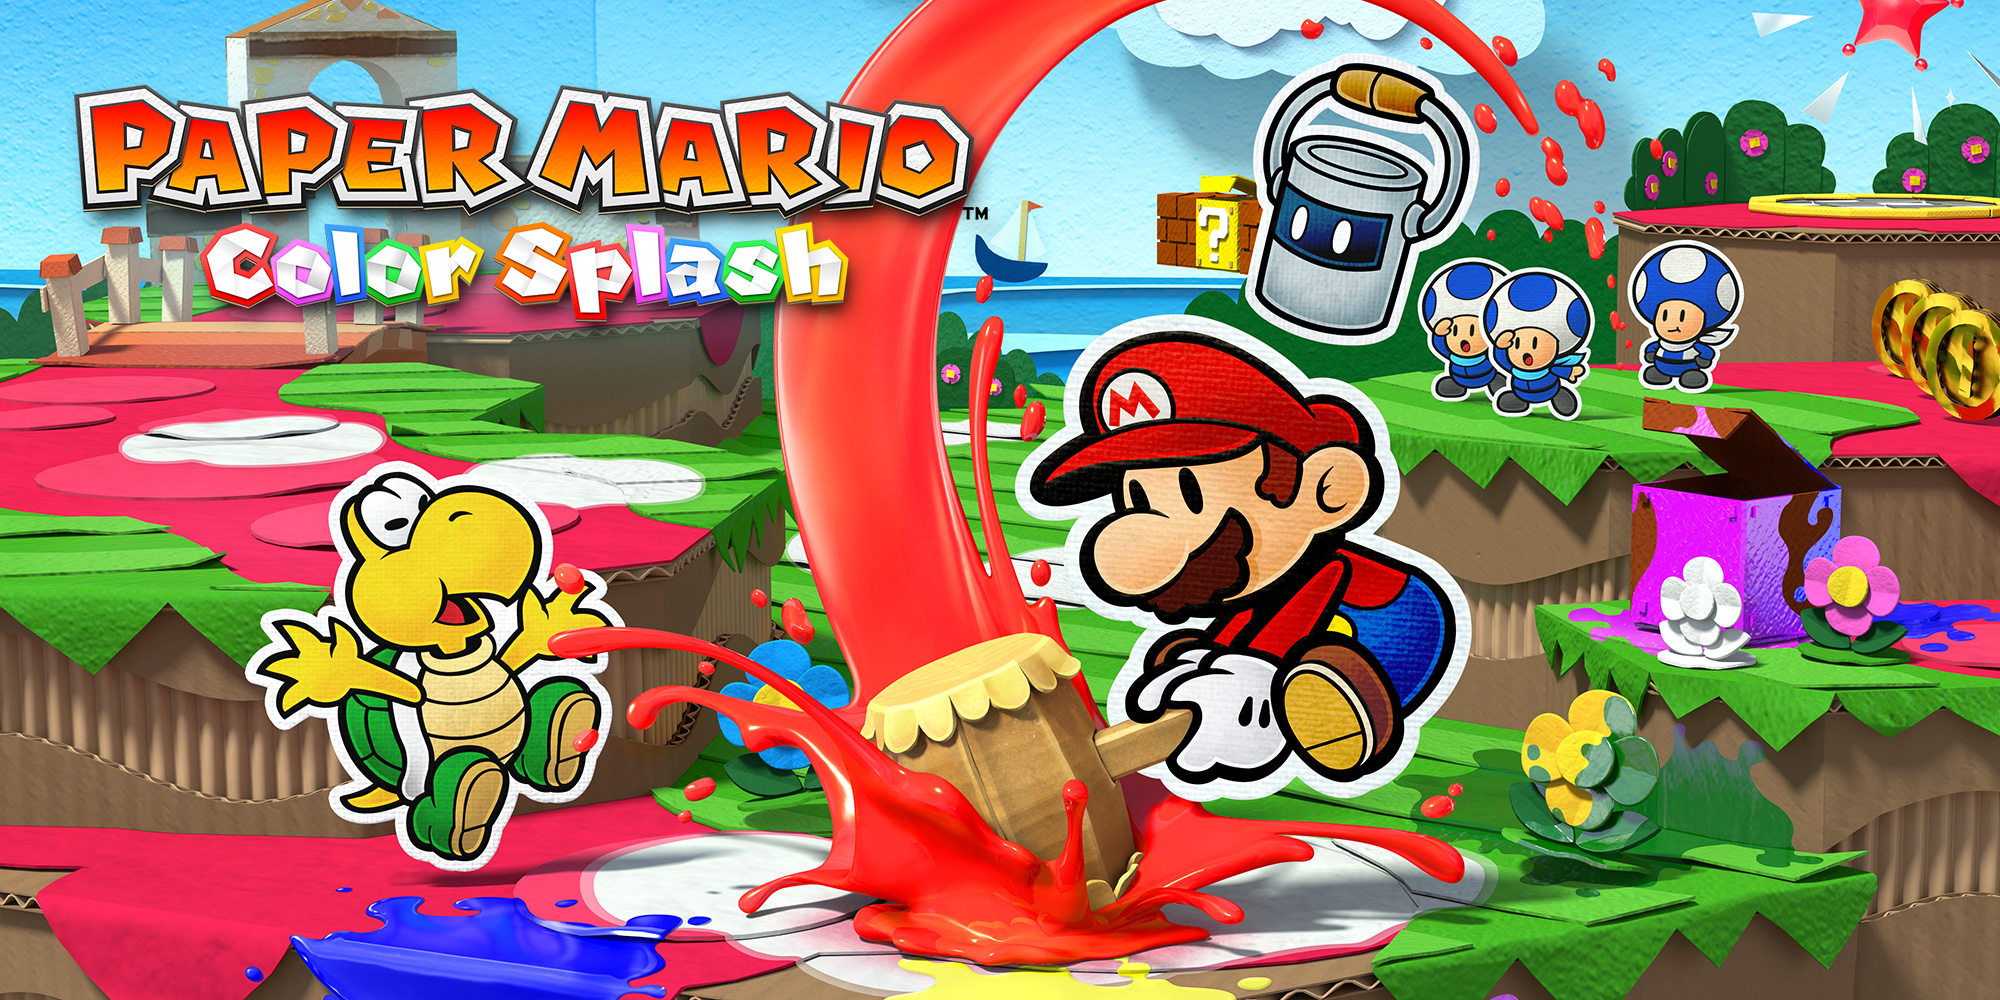 paper mario sticker star world 2-2 help Paper mario: sticker star - 2-2: yoshi sphinx jump to a section: home releases credits characters list overview story gameplay locations stickers sidequests shops enemies media walkthrough achievements cheats.